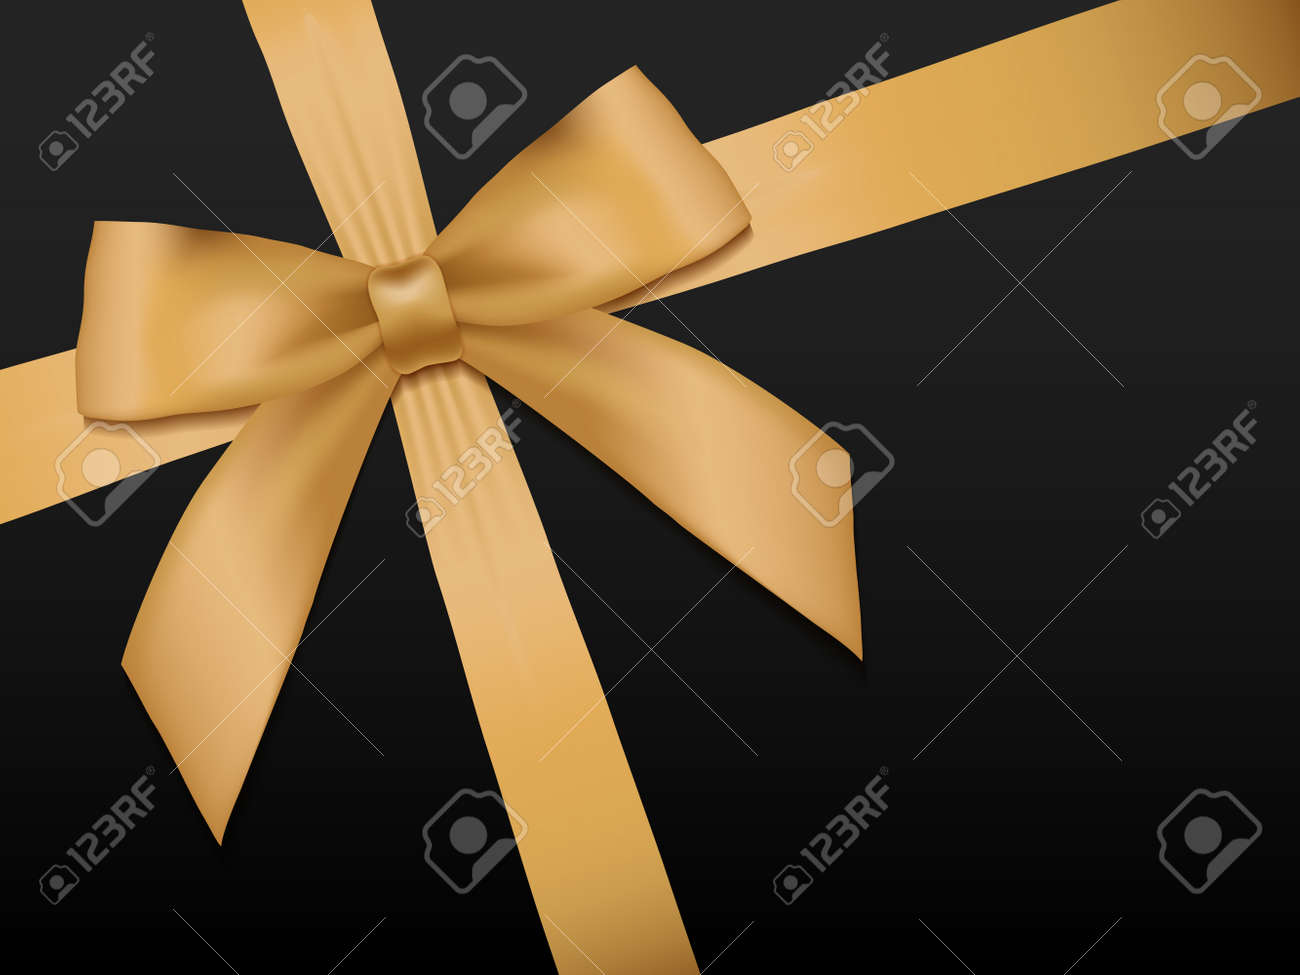 Gold Bow with ribbons. Shiny holiday gold satin ribbon on black background. Gift coupon, voucher, card template. Vector illustration. - 51871166